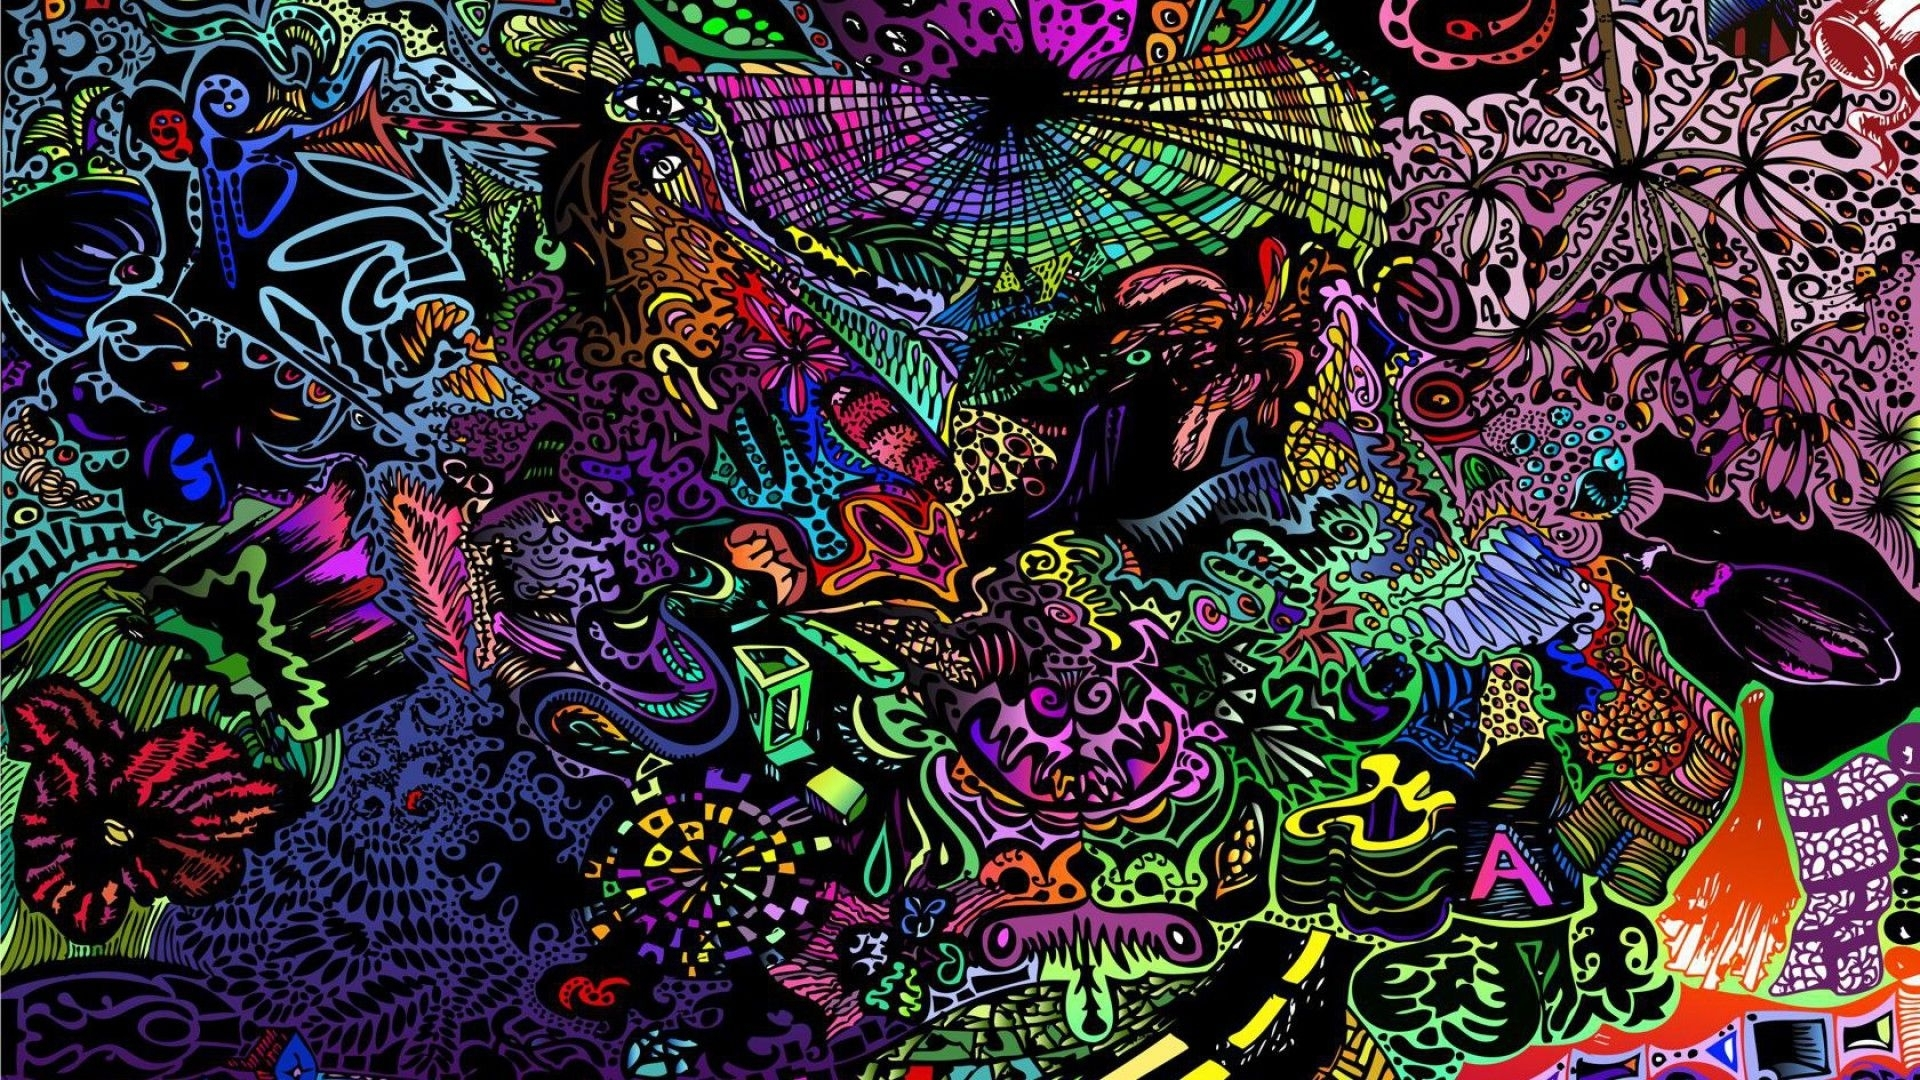 trippy wallpapers 2560×1440 trippy desktop backgrounds hd (37